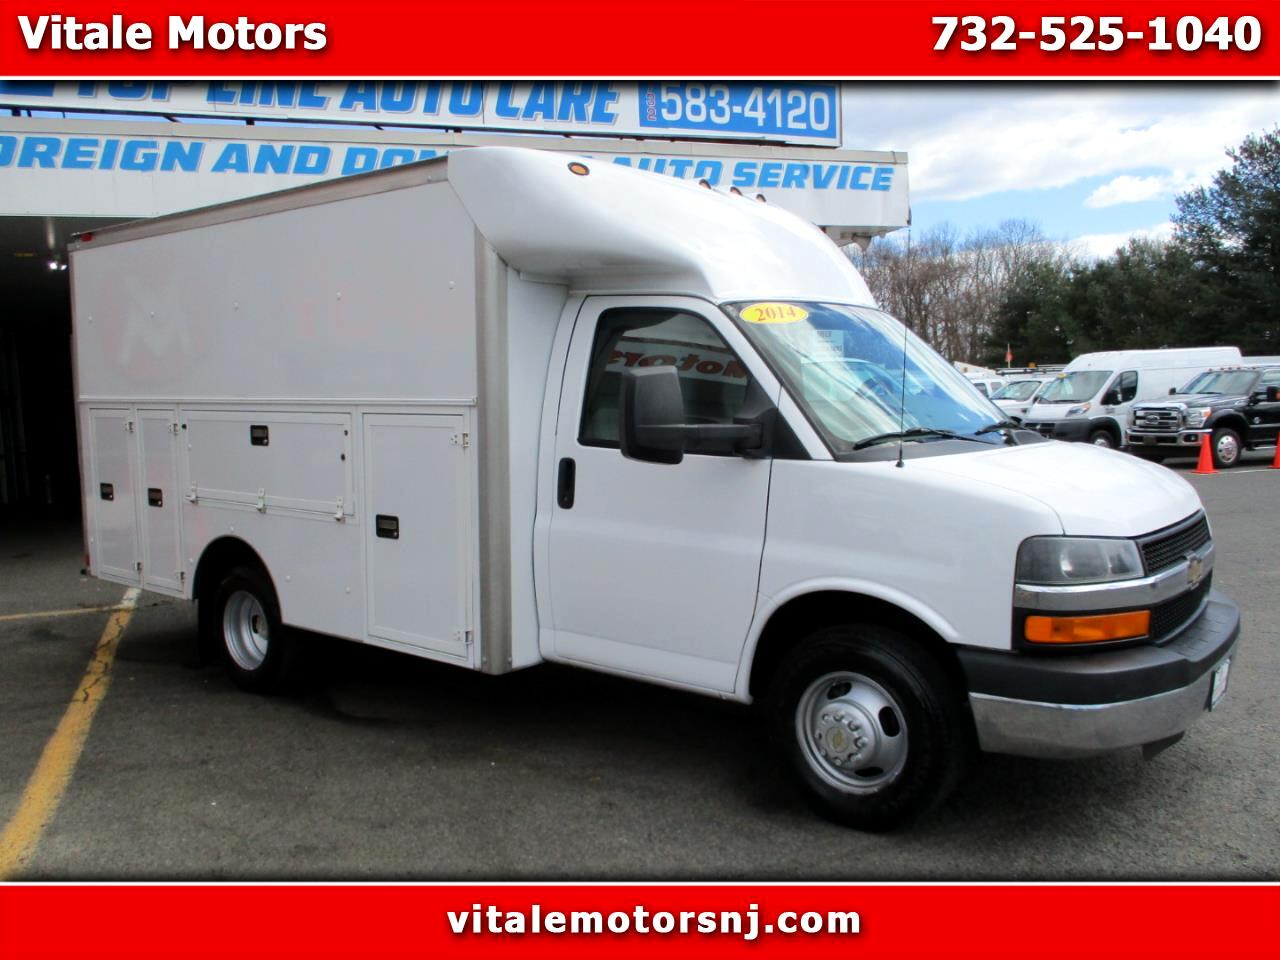 2014 Chevrolet Express G 3500 12 FOOT ENCLOSED UTILITY BODY